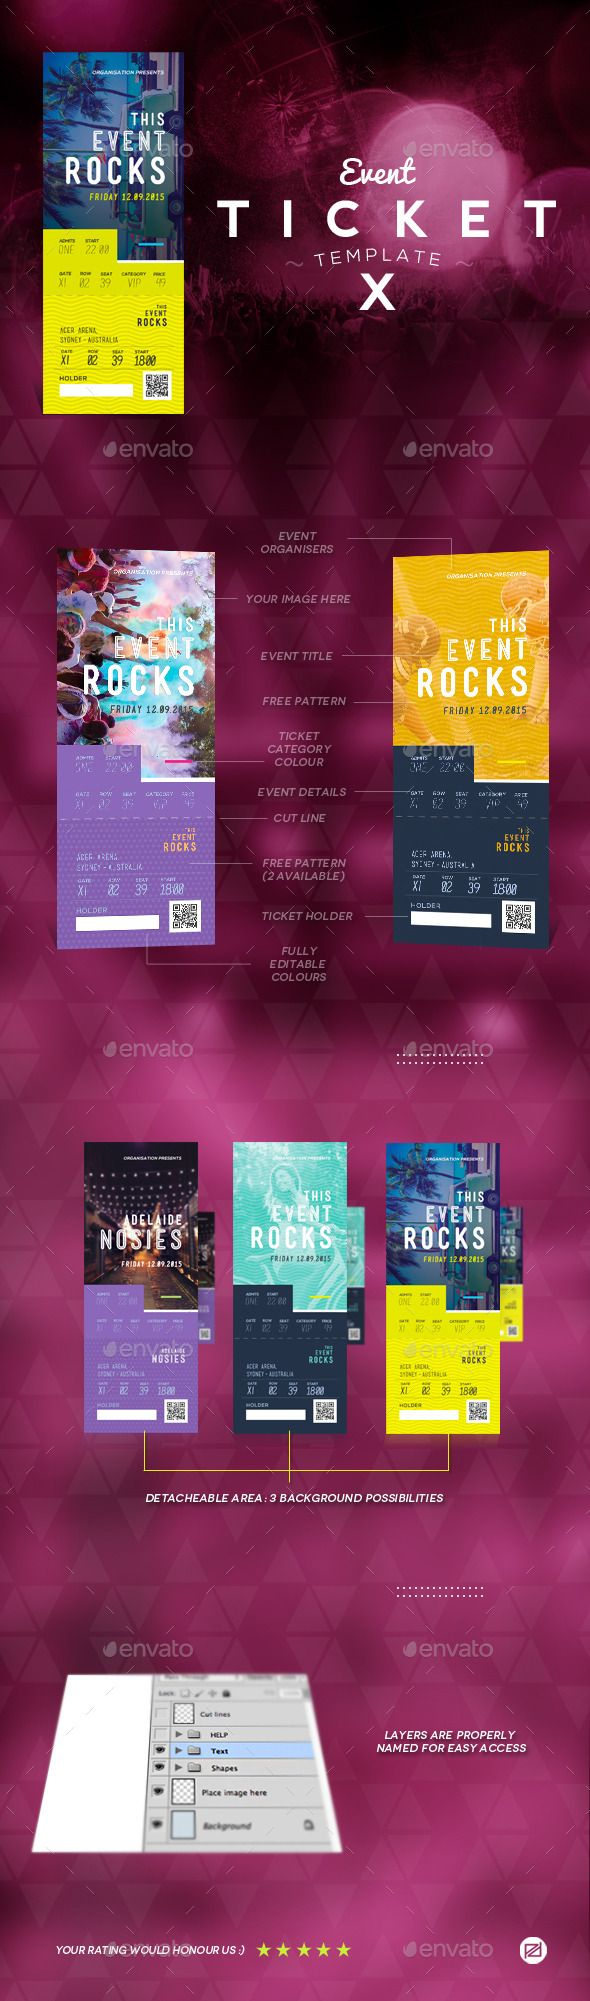 Event Tickets Template PSD. Download here: https://graphicriver.net/item/event-tickets-template-10/9177568?ref=ksioks